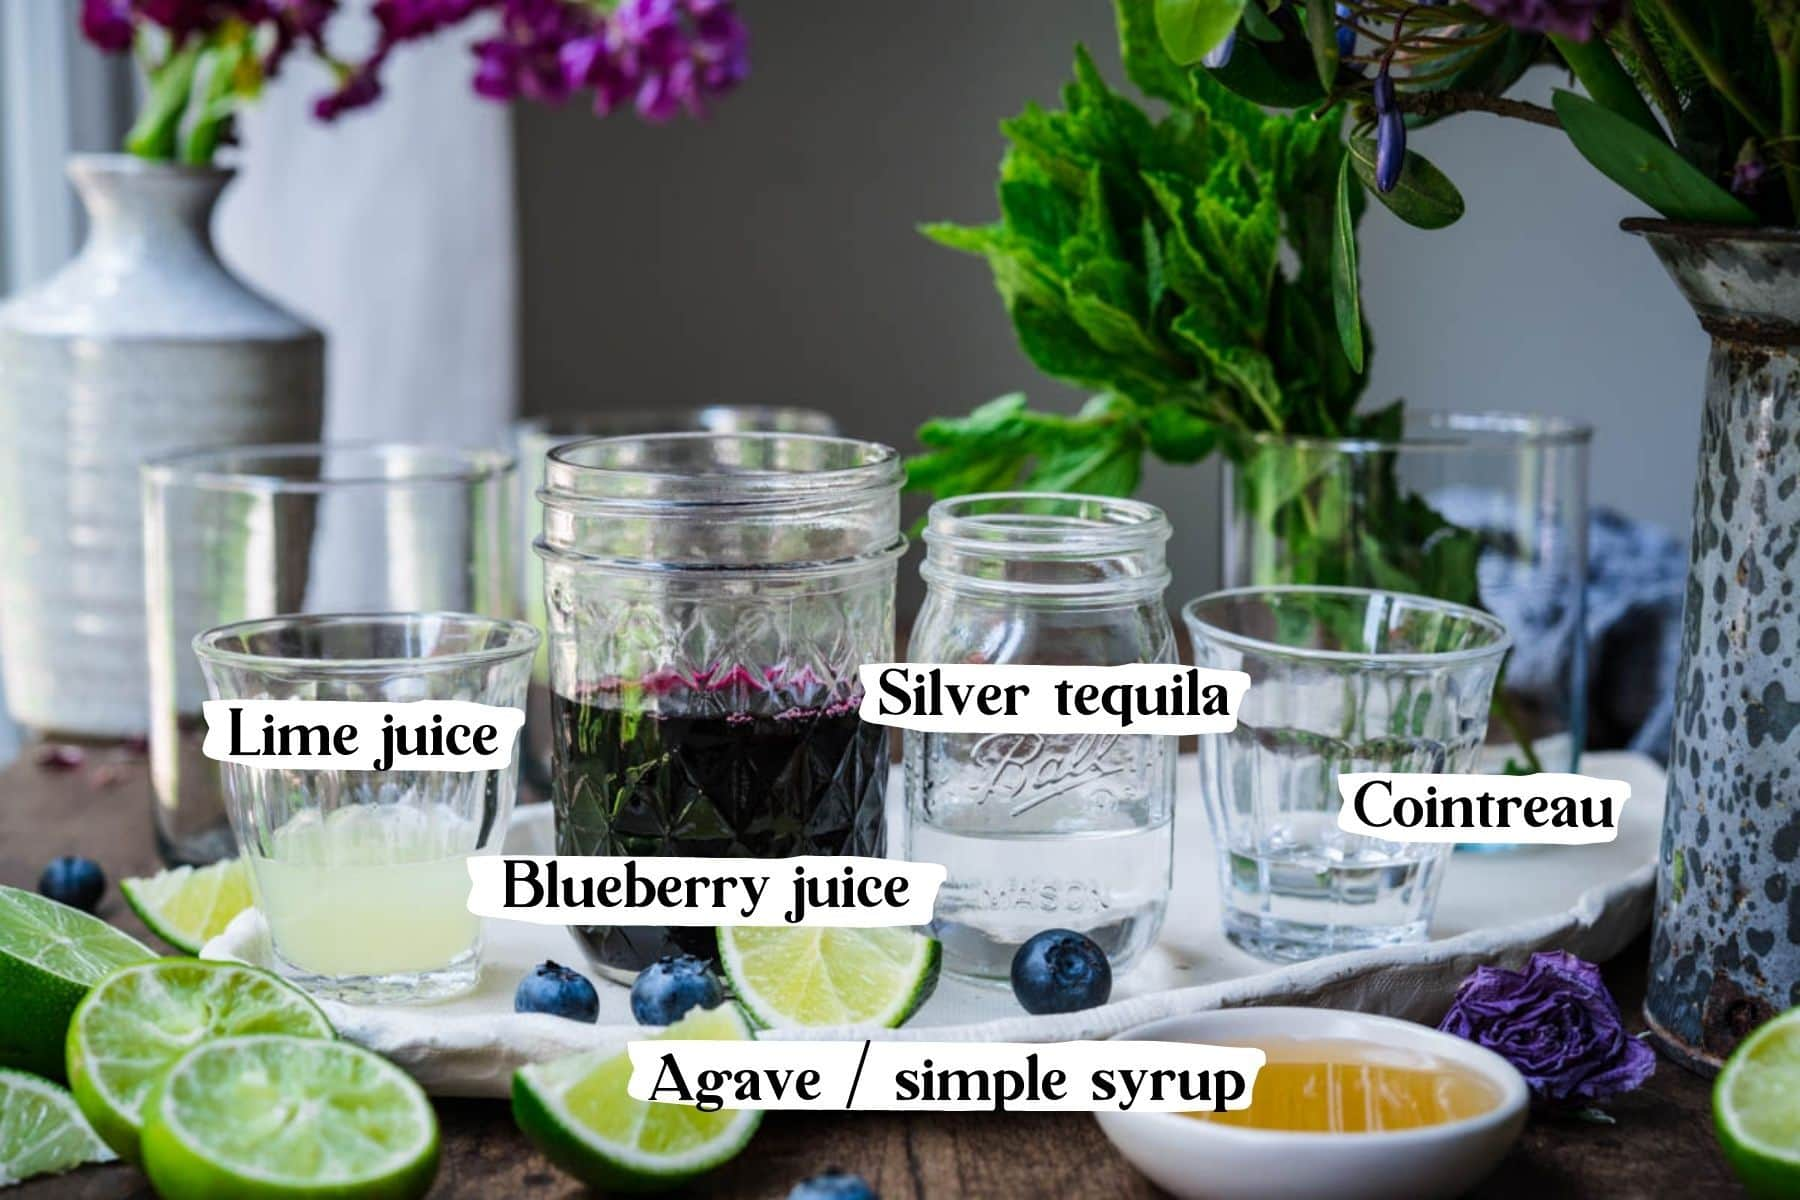 Front view of cocktail ingredients, including lime juice, blueberry juice, silver tequila, cointreau, and agave.